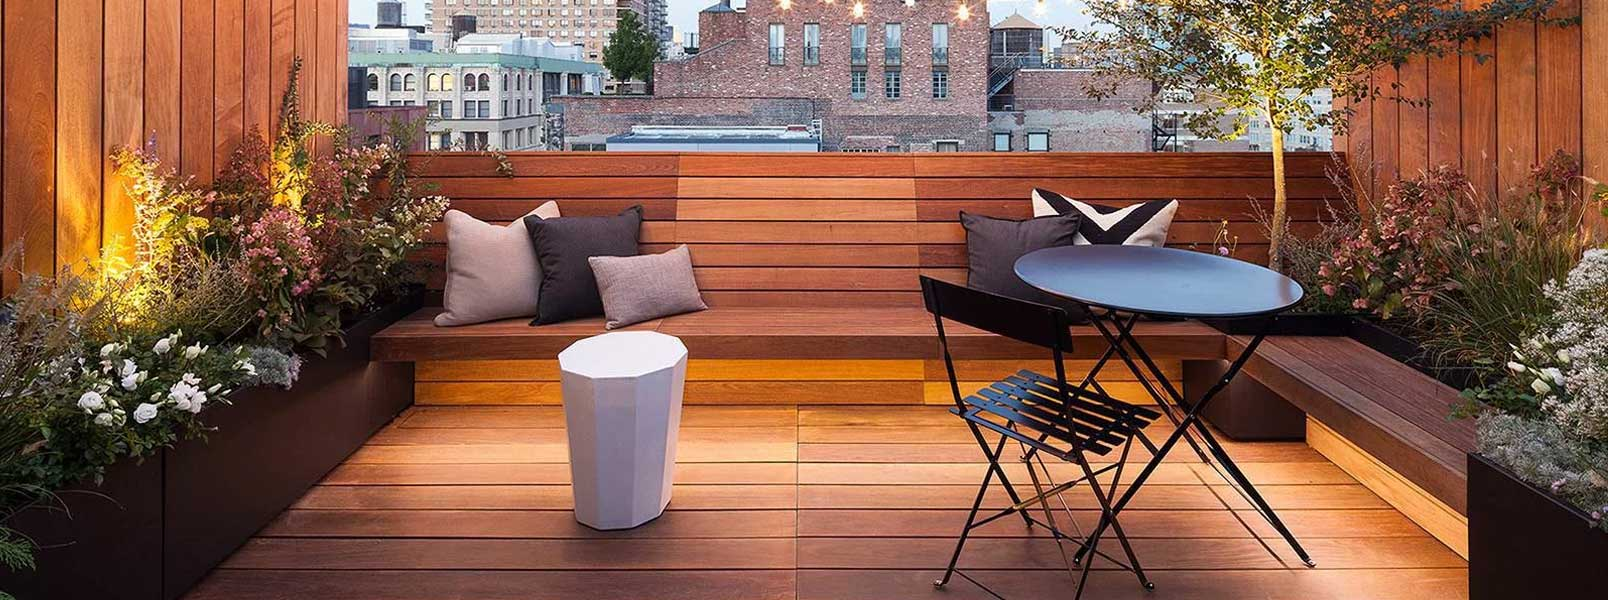 Building A Rooftop Urban Patio to Make the Most of Summer